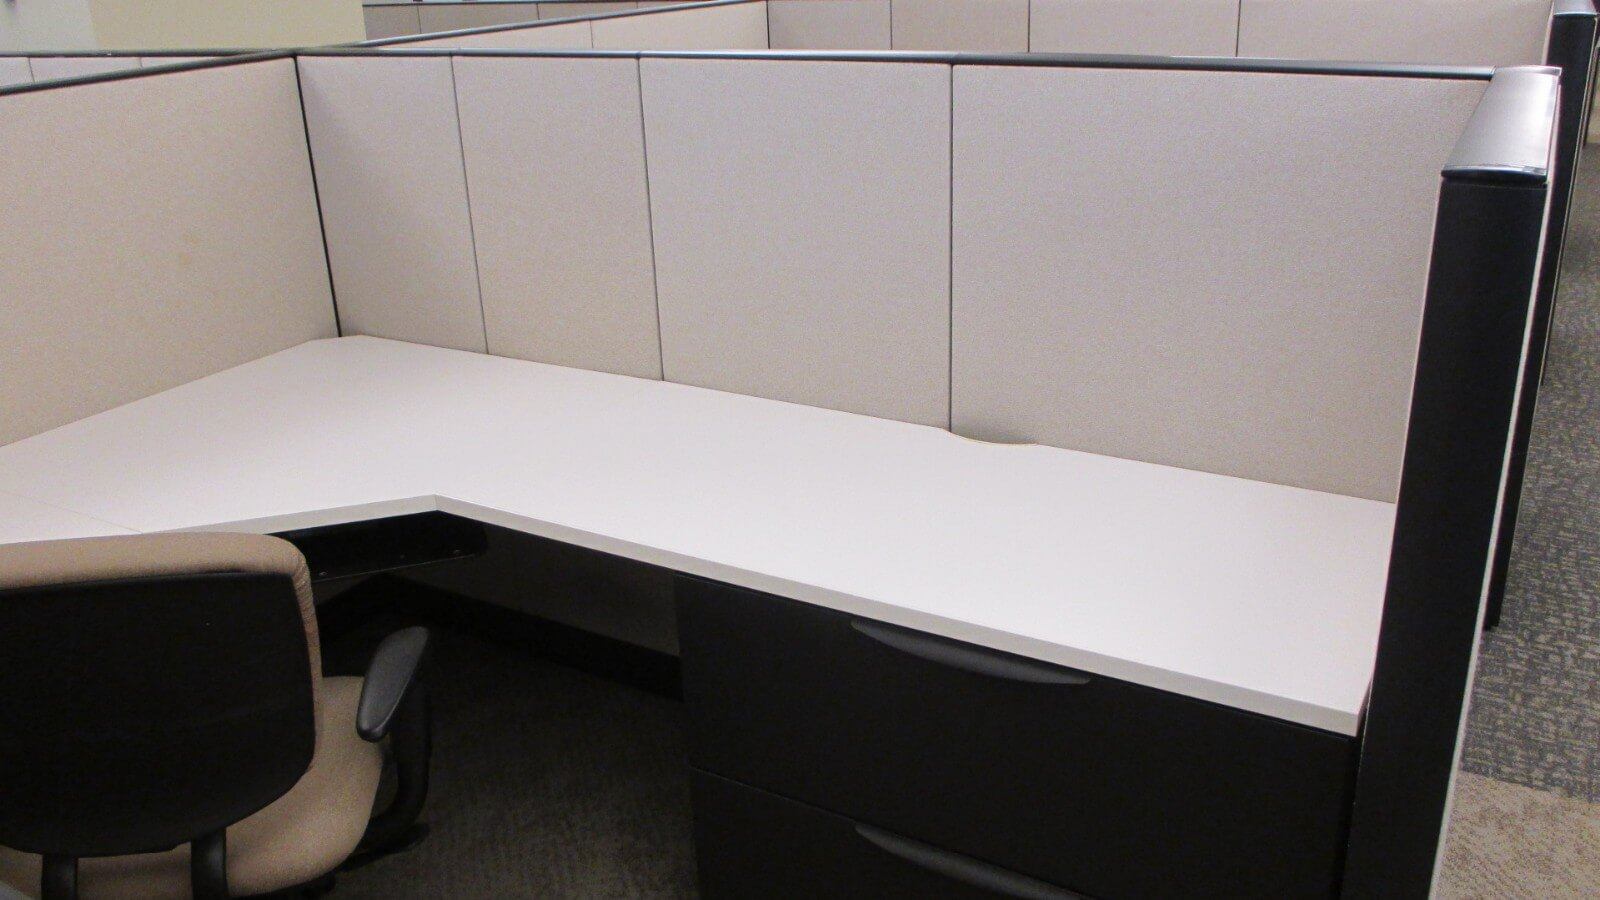 Haworth Premise - Large Work Surface